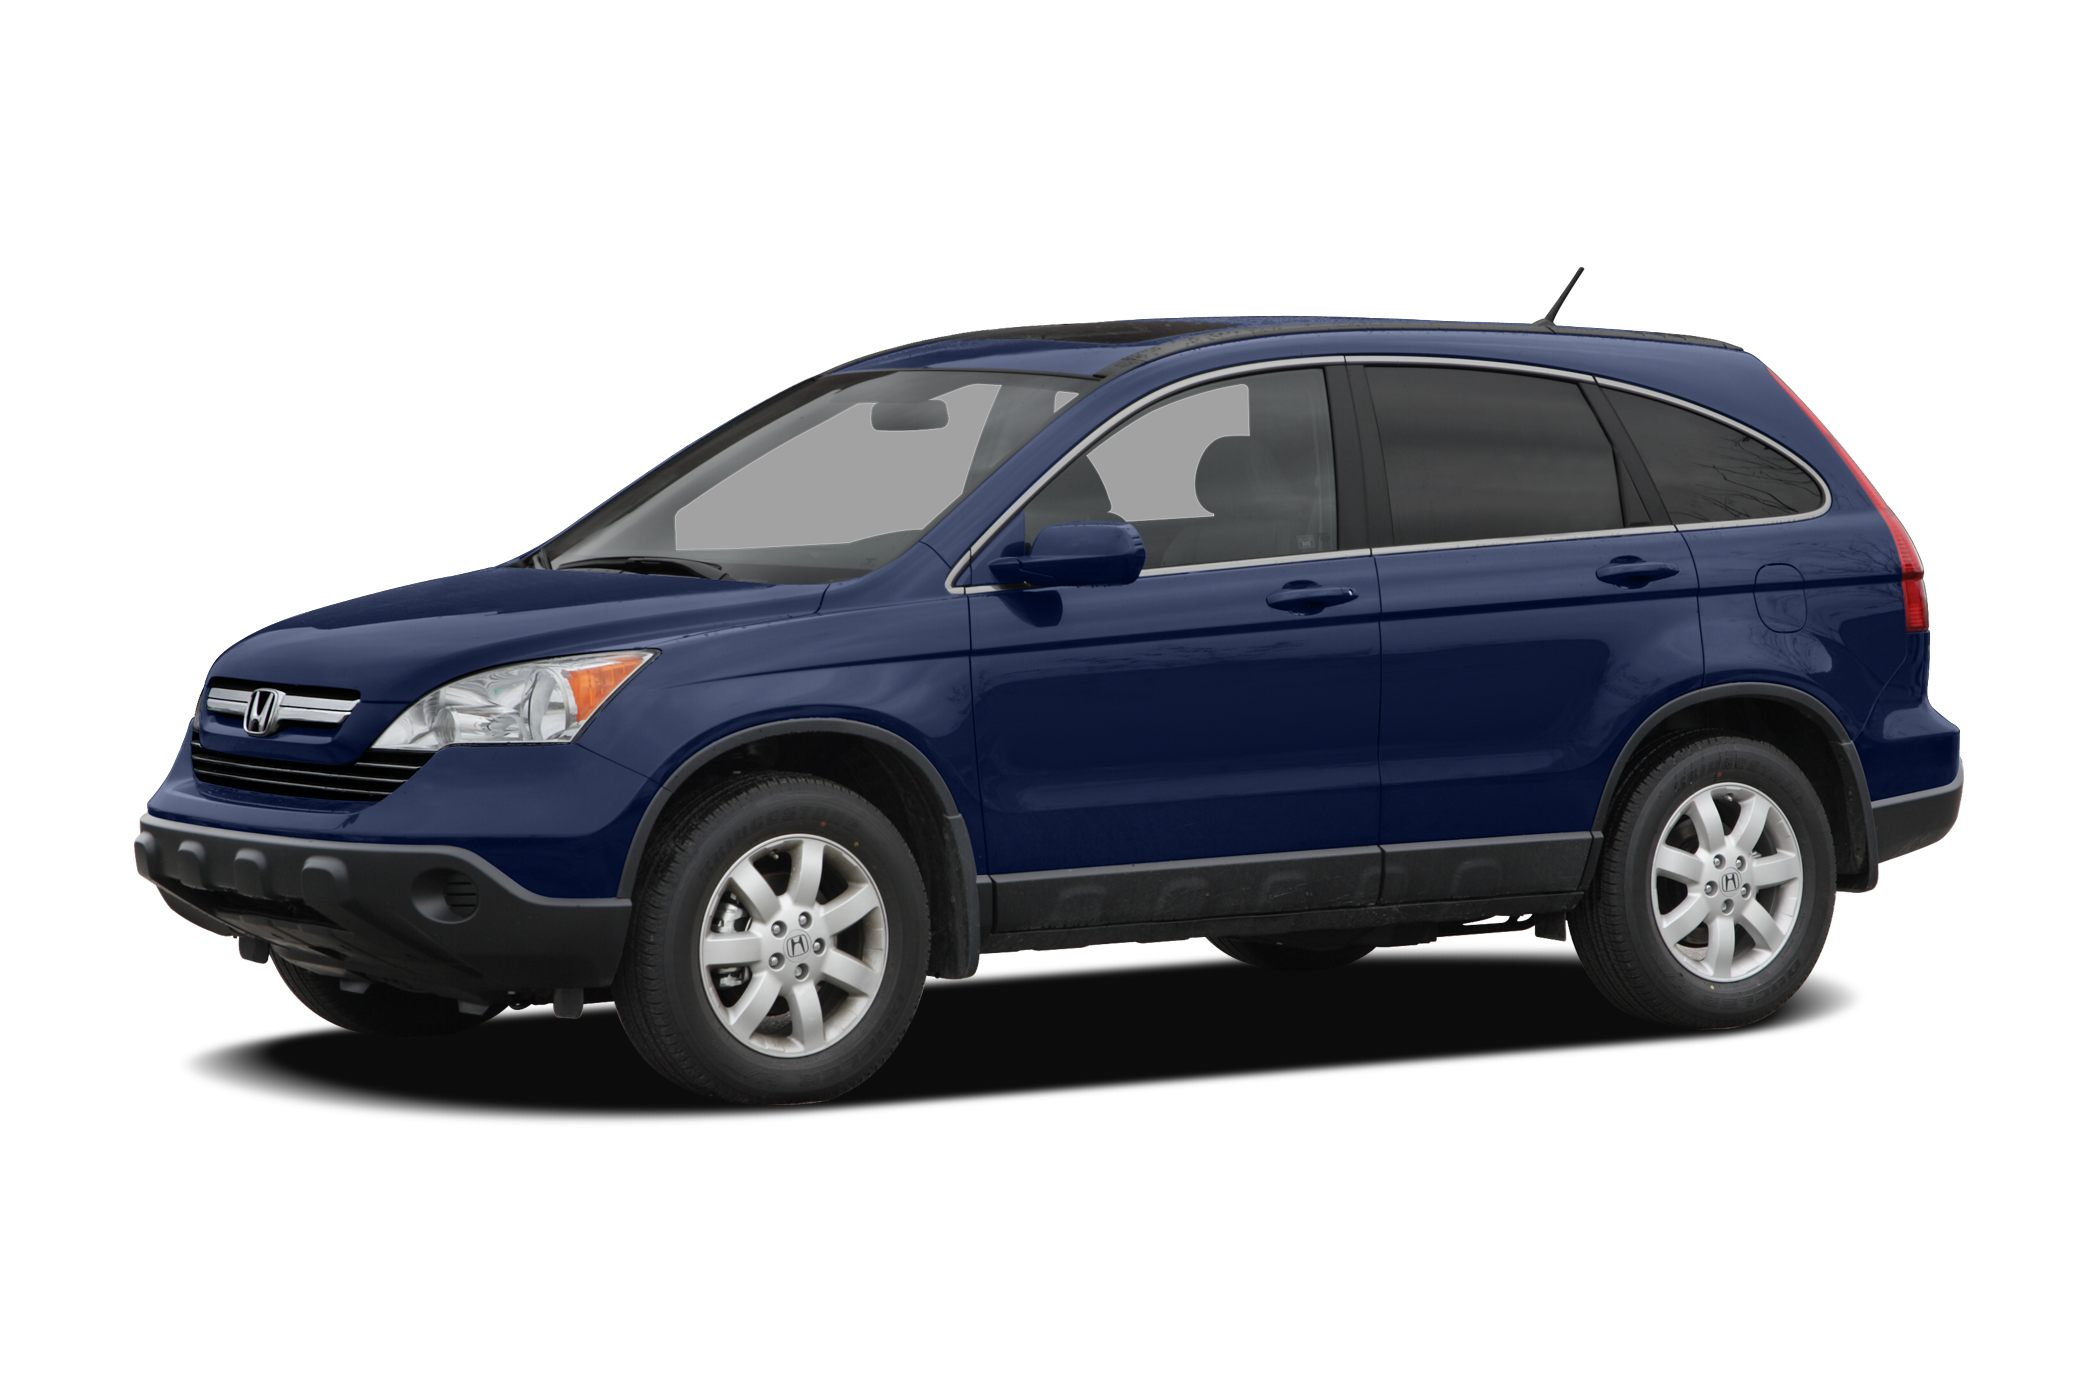 2007 Honda CR-V LX FUEL EFFICIENT 28 MPG Hwy22 MPG City PRICED TO MOVE 1900 below Kelley Blue